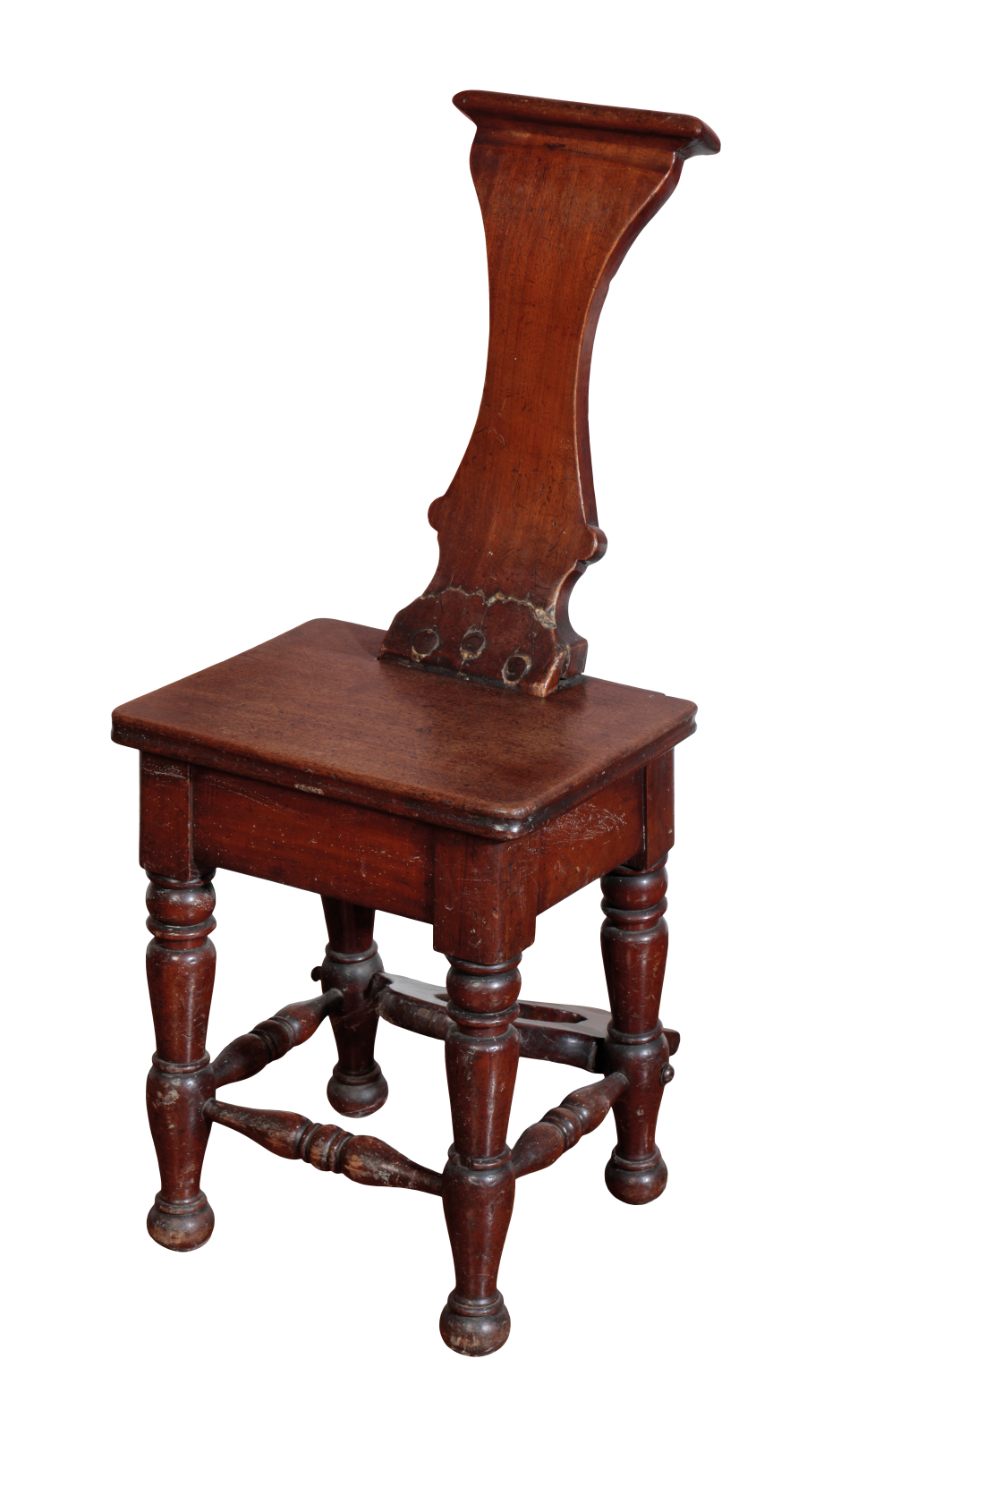 A GEORGE IV MAHOGANY AND WALNUT HALL CHAIR BOOT-PULL,